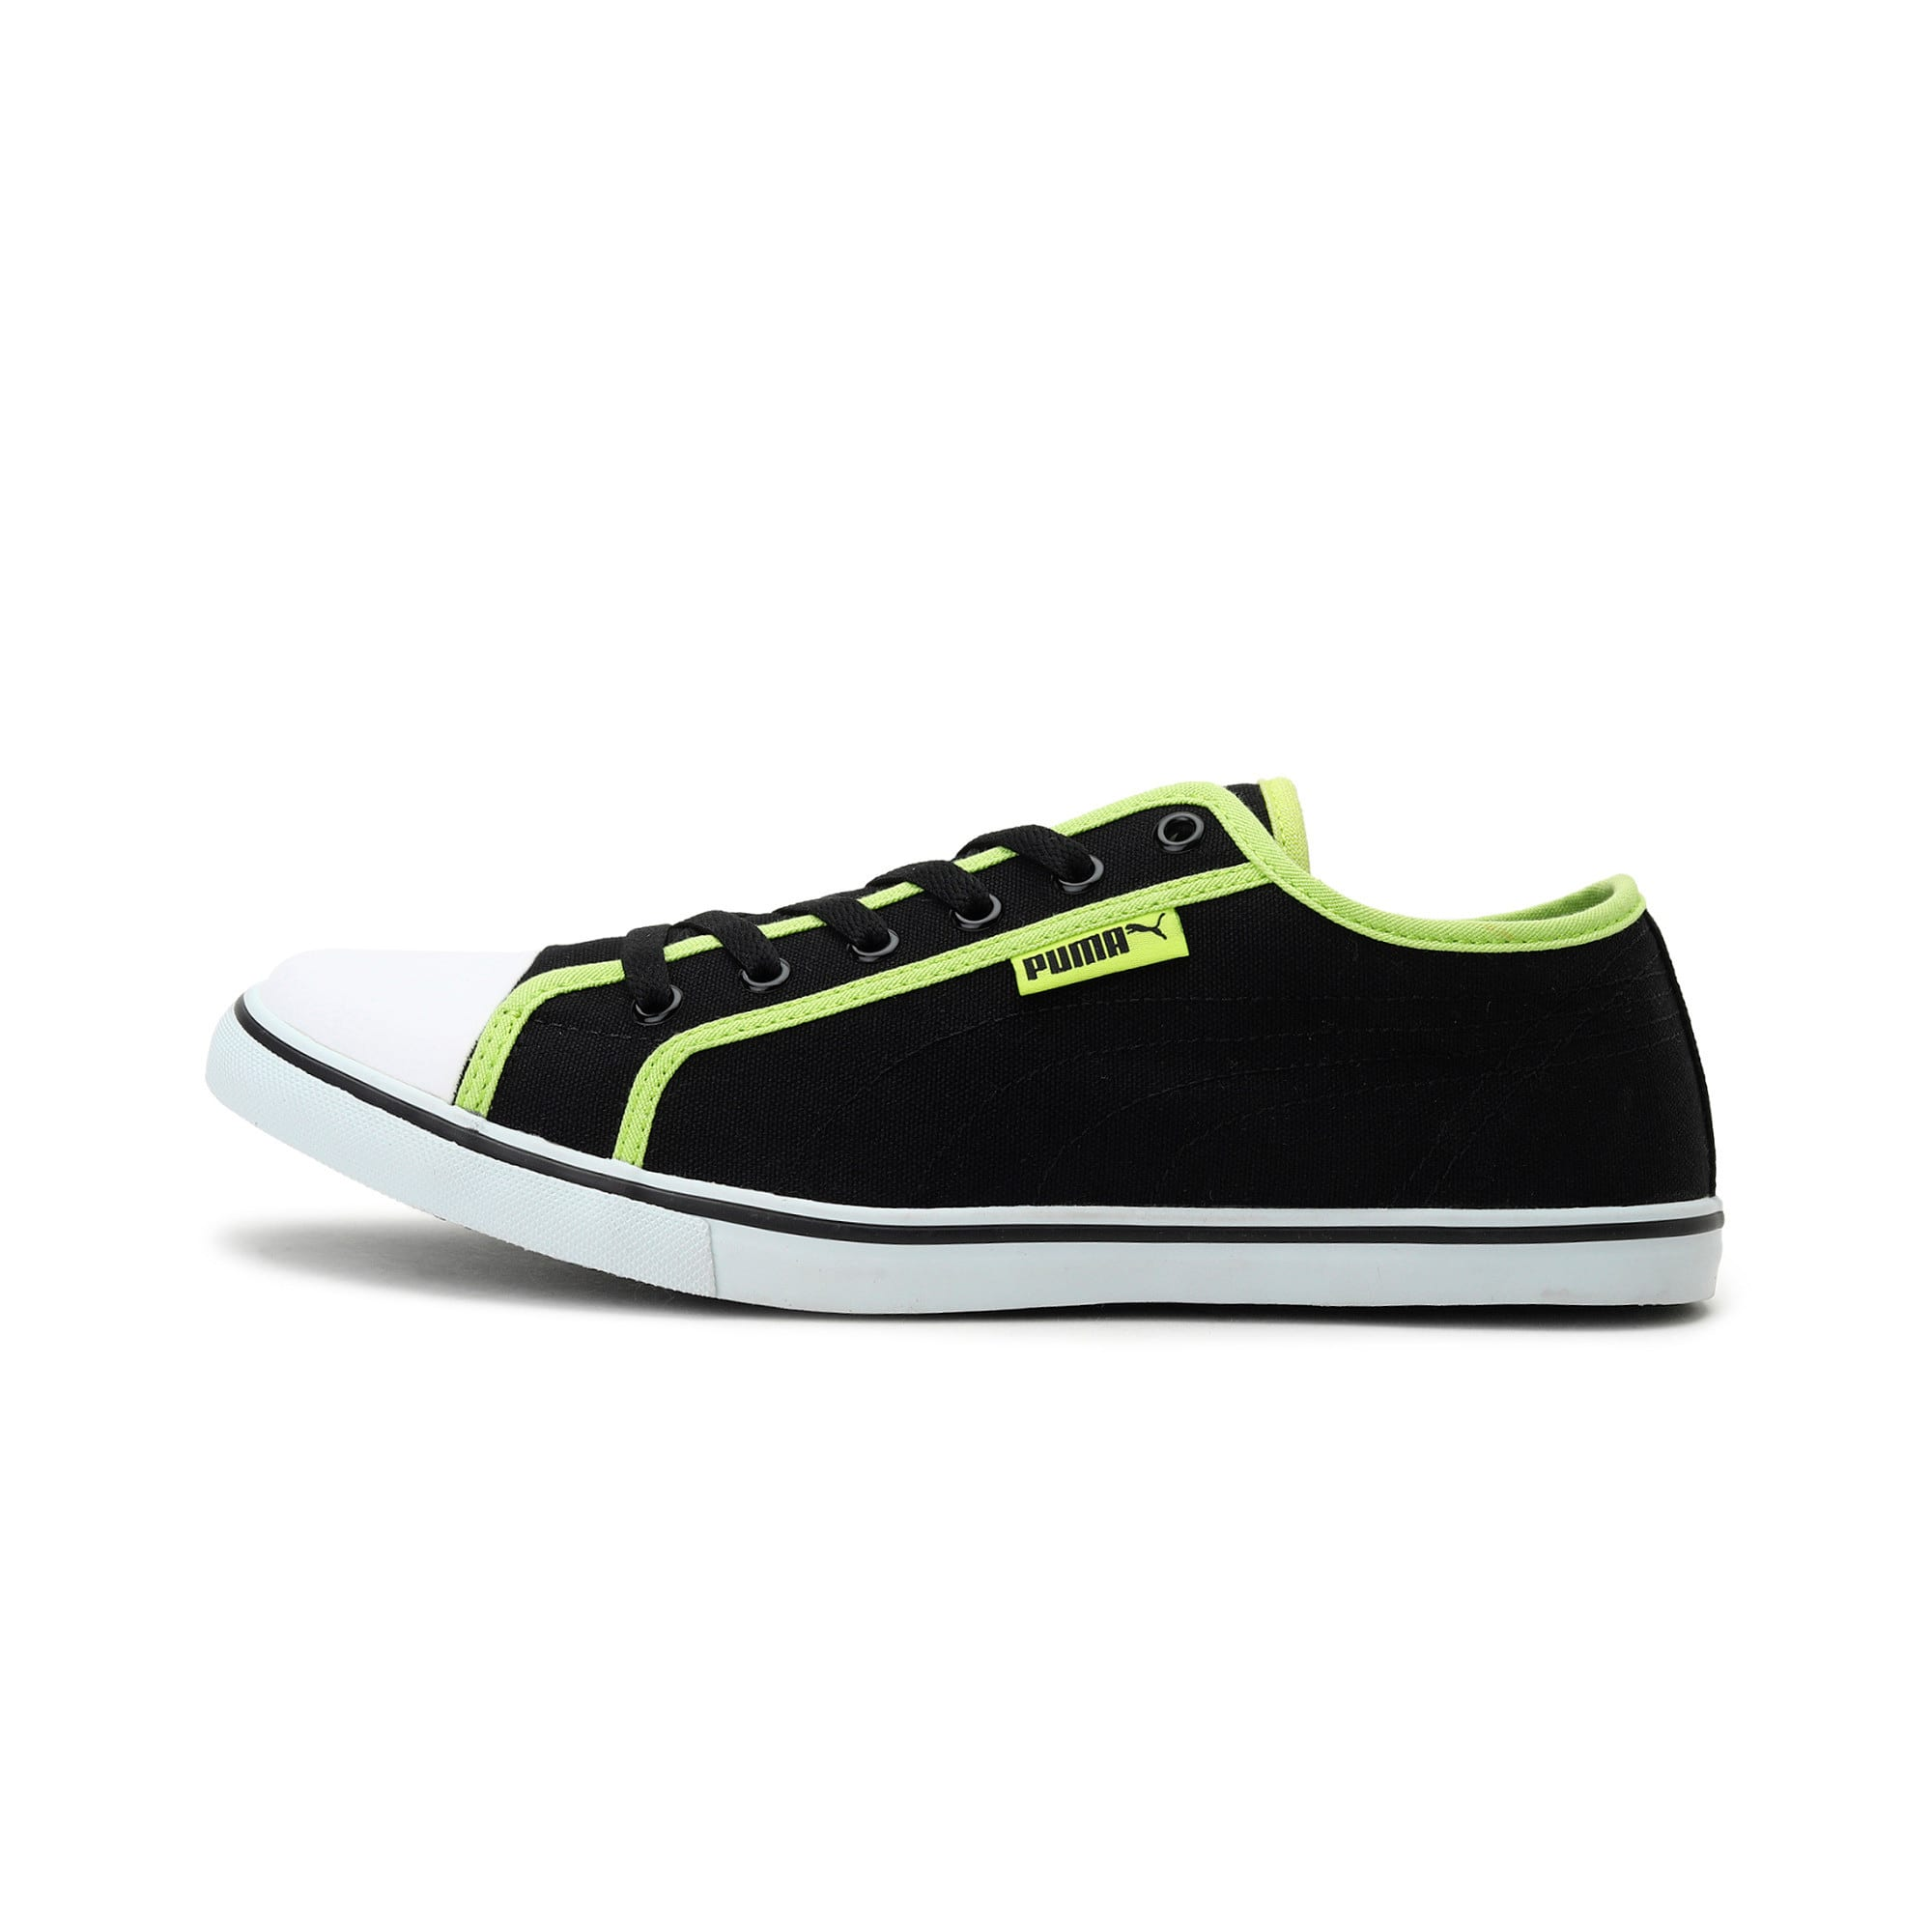 Thumbnail 1 of Puma Streetballer DP, Black-Puma White-Limepunch, medium-IND